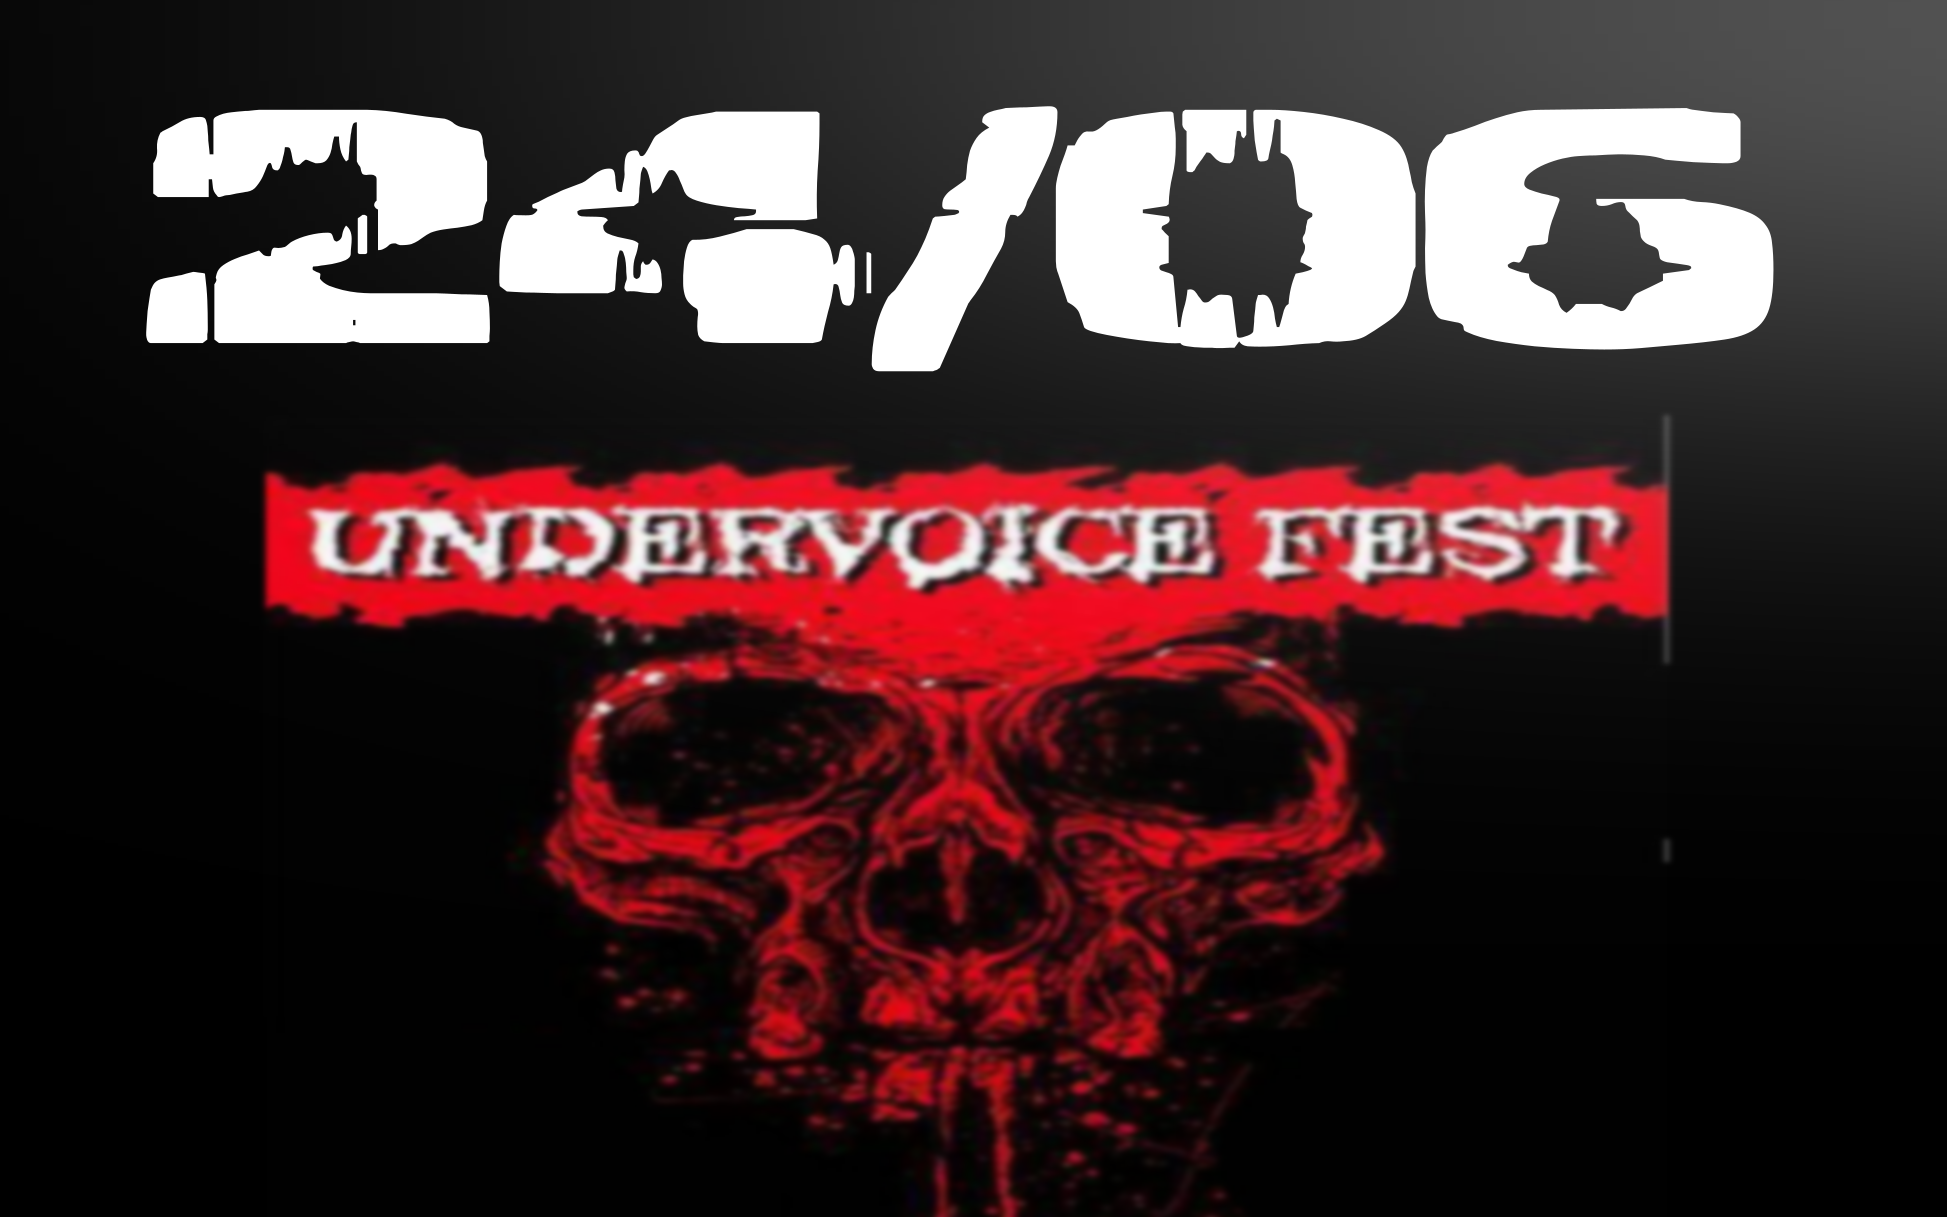 EVENTO: Undervoice Fest